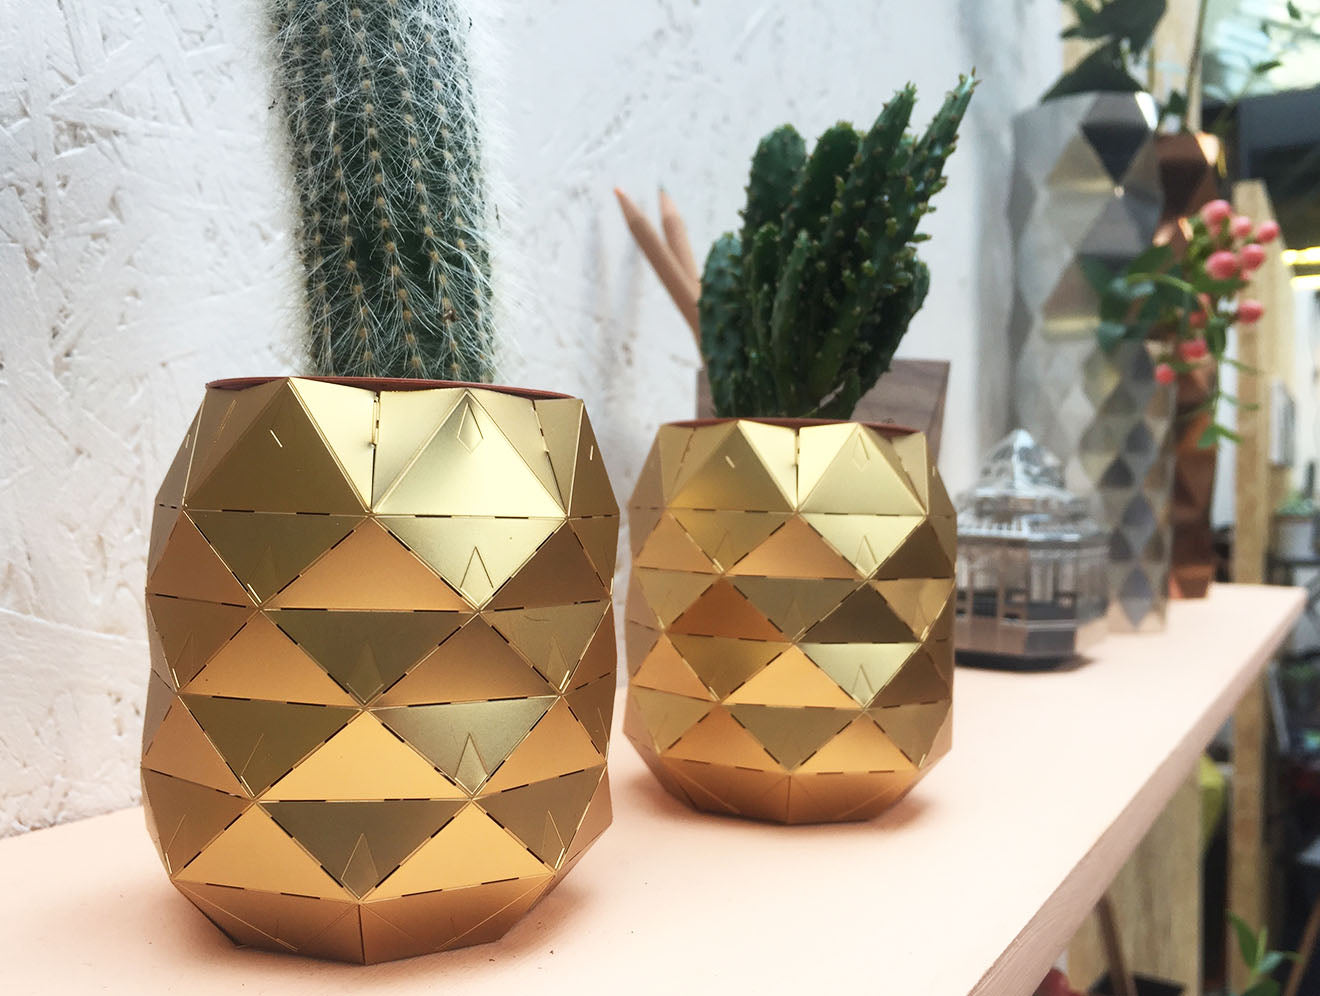 Brass coloured metal cactus plant holders from Another Studio